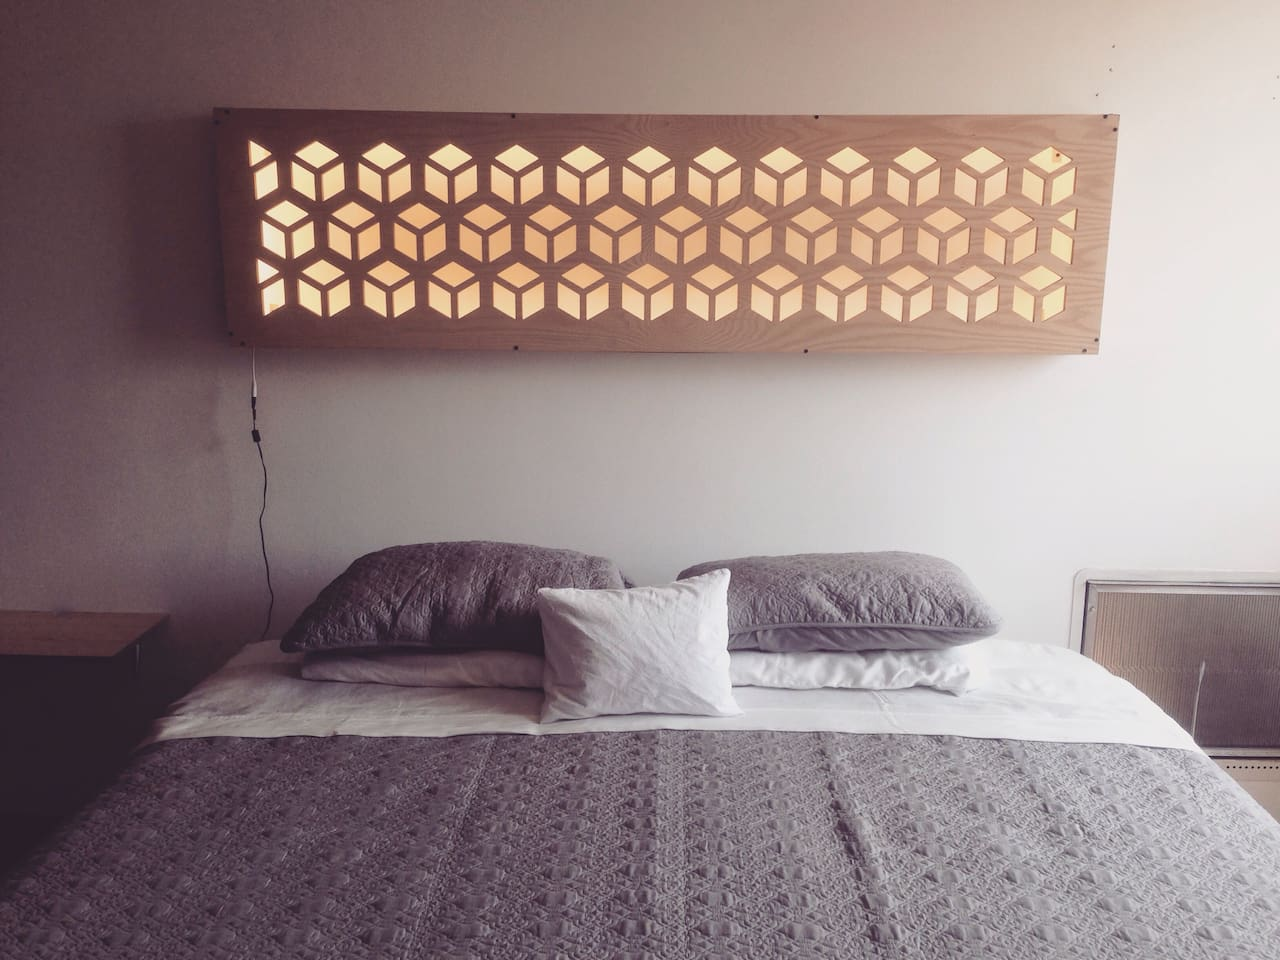 King size bed with warm white Led lamp designed and built by me.